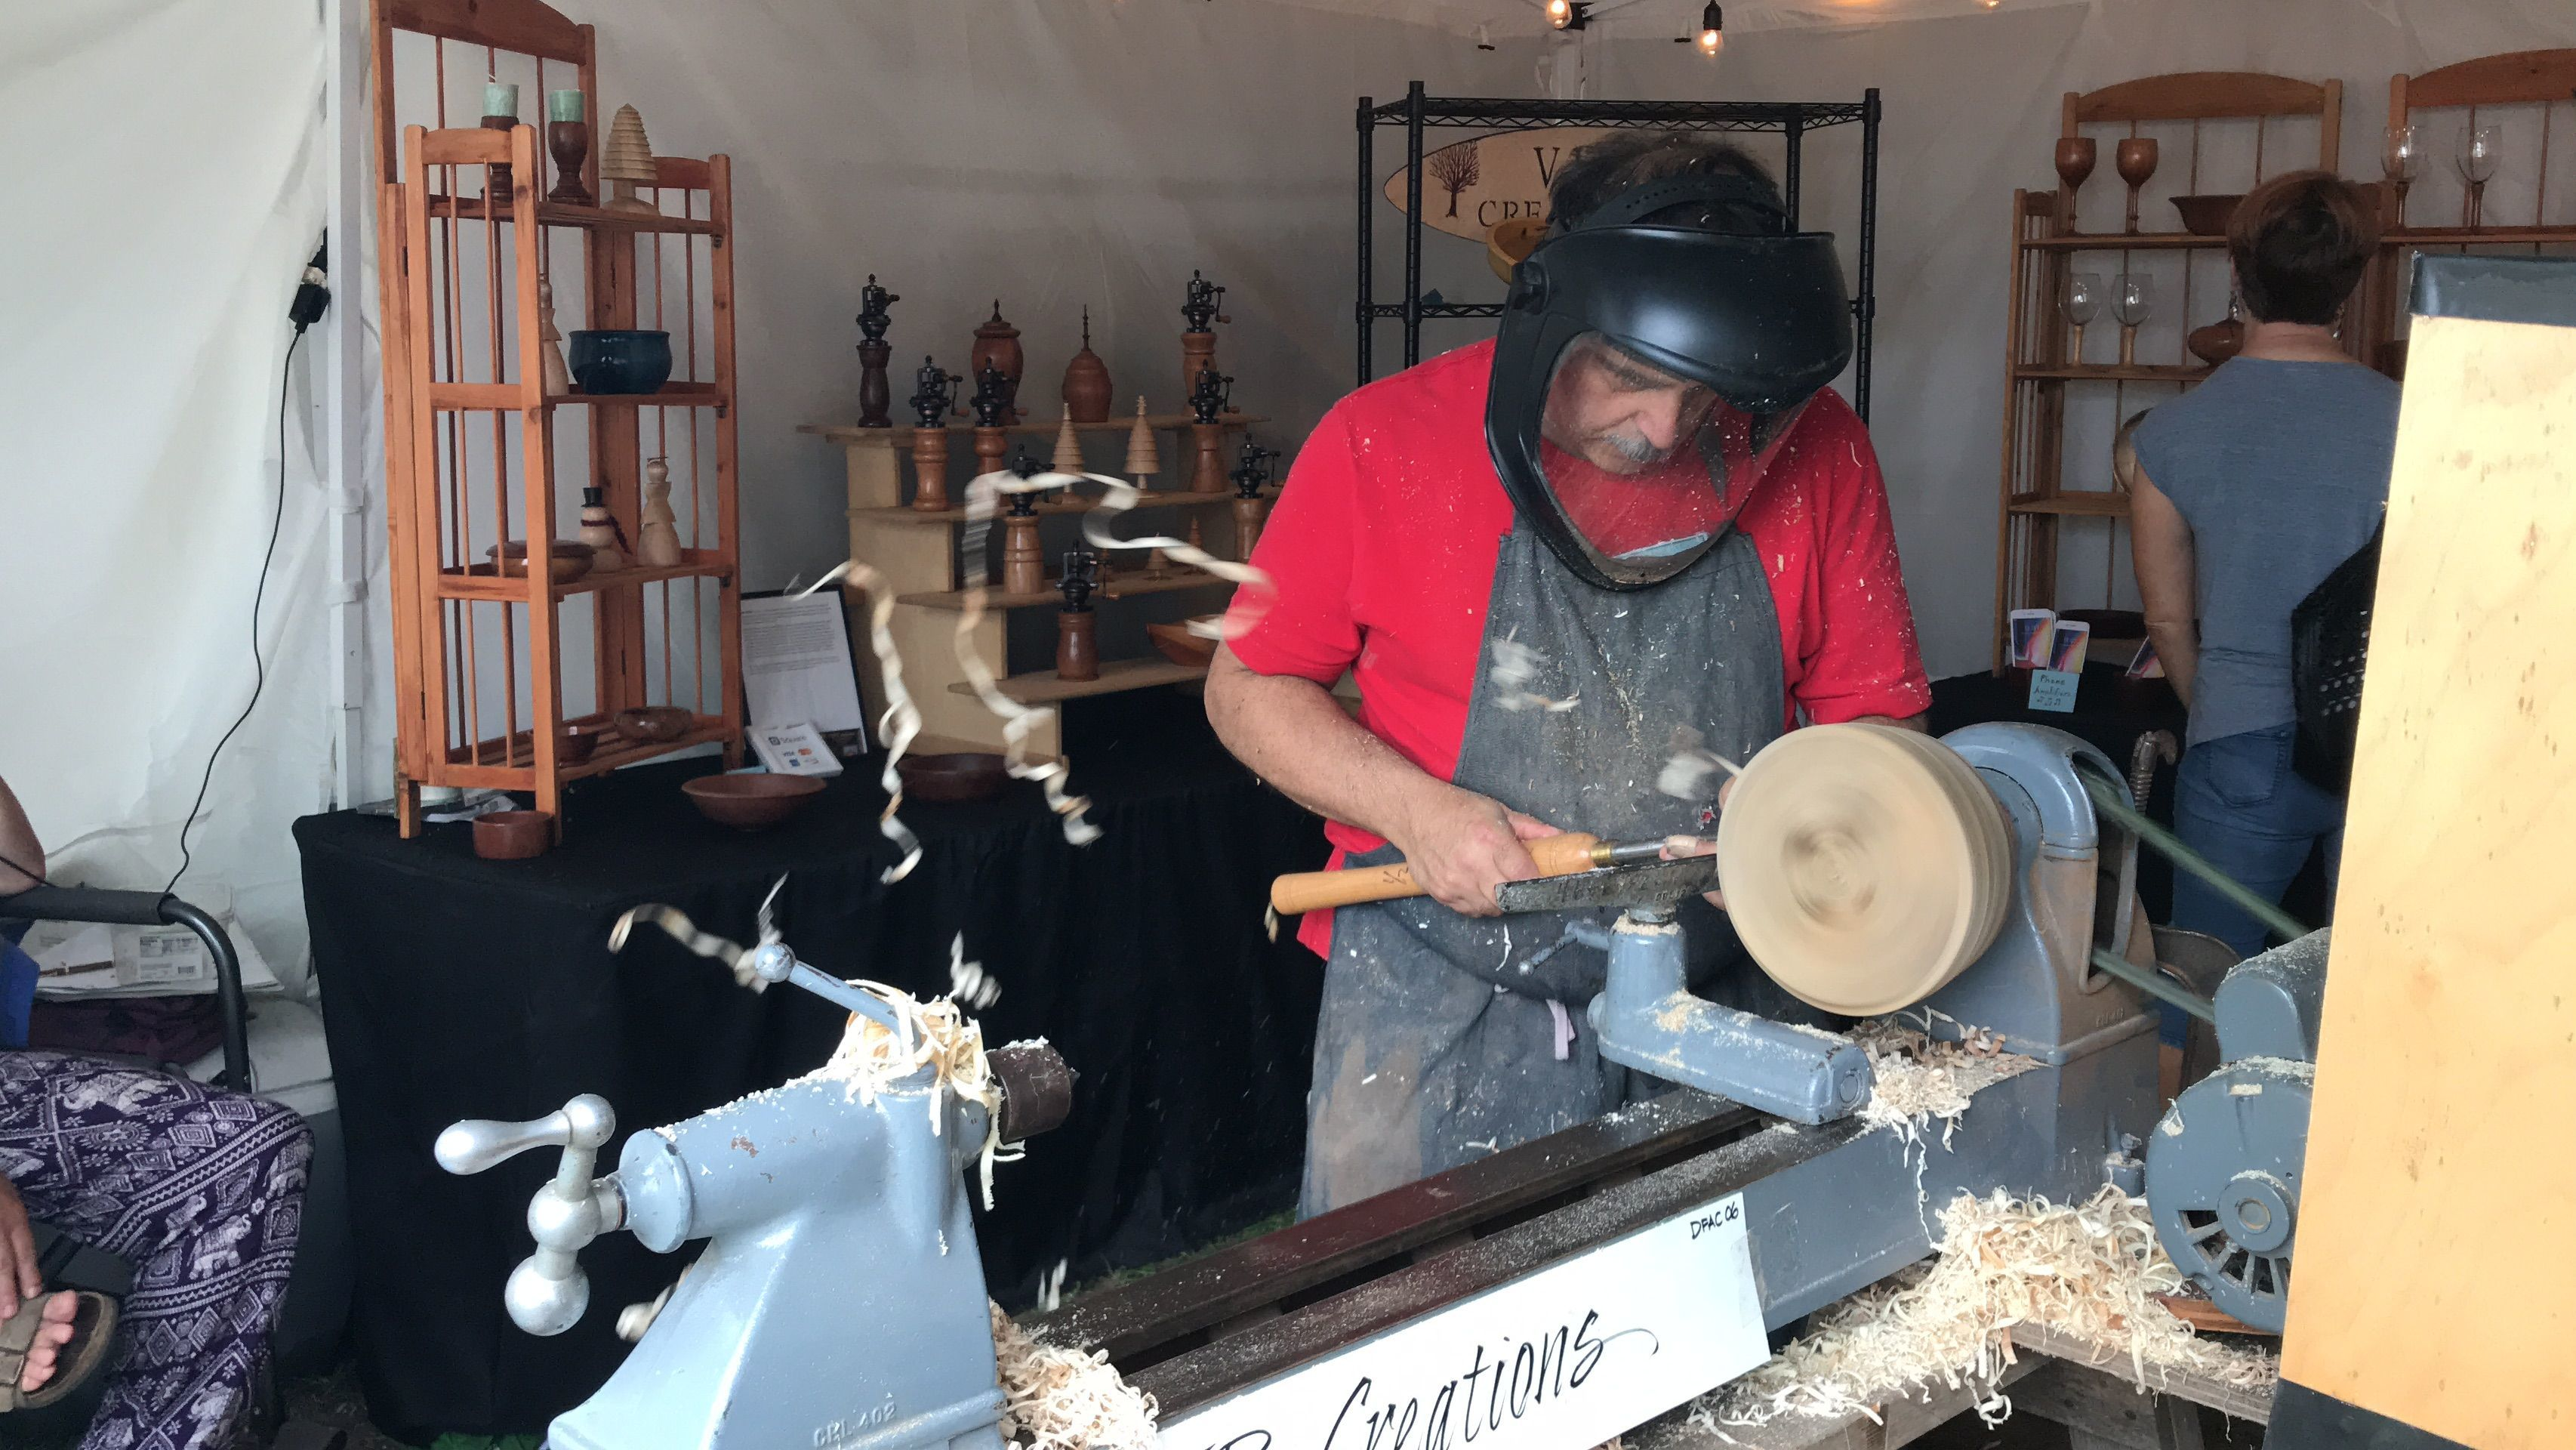 Joe Botta, of VJB Creations, works on a wooden bowl at the Woodstock-New Paltz Art & Crafts Fair in New Paltz on Sept. 2, 2018. This year's event is set for May 25-27.